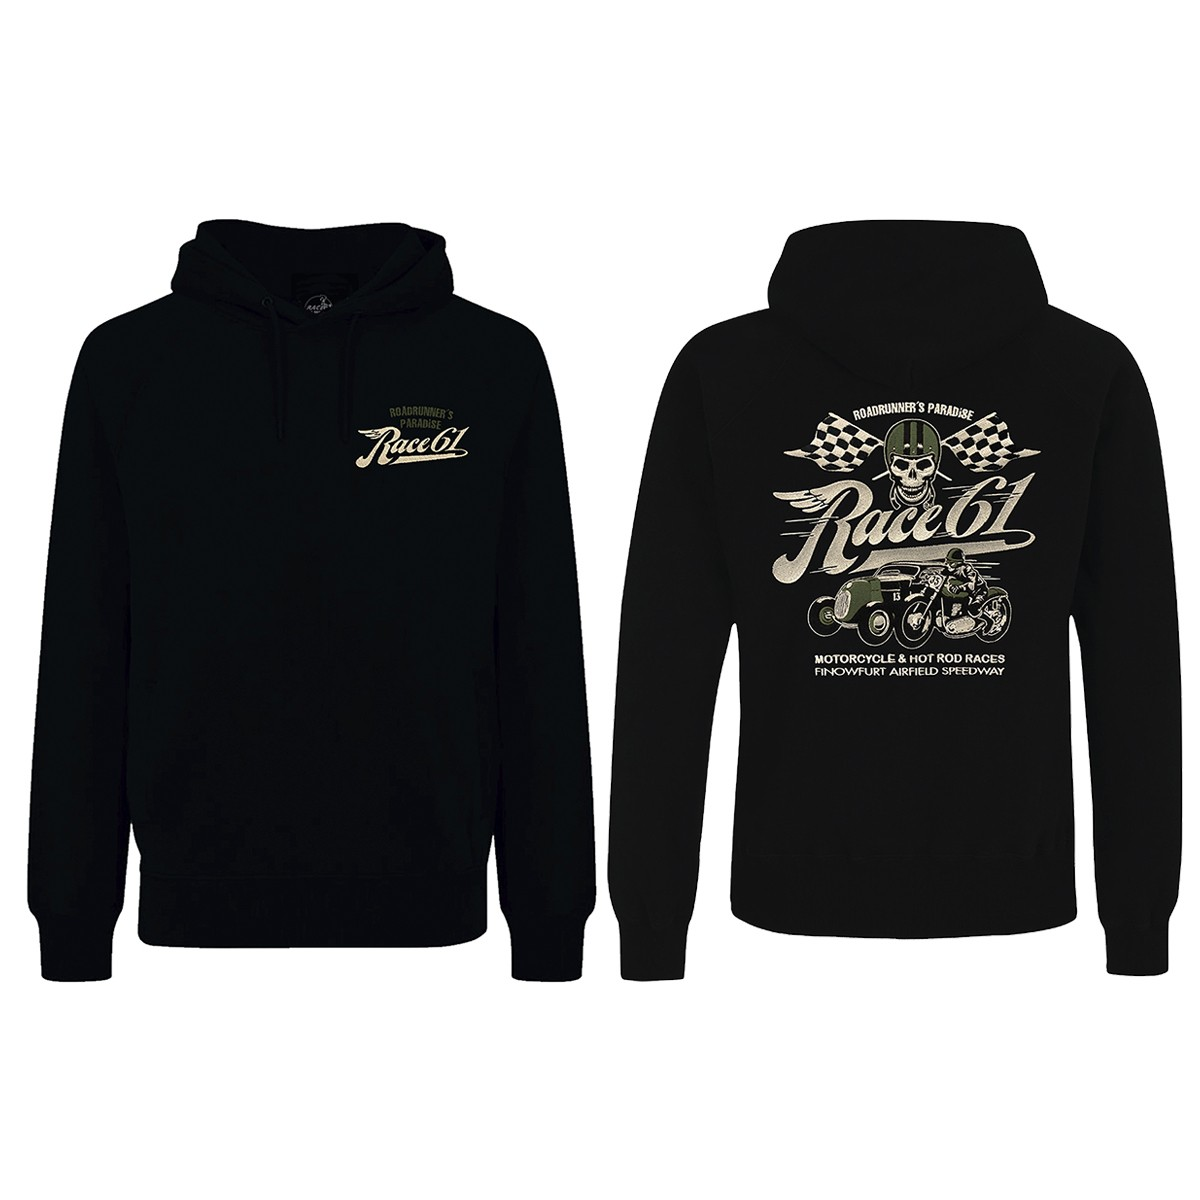 Race 61 Hoodie Motorcycle and Hot Rod Races mit Stick